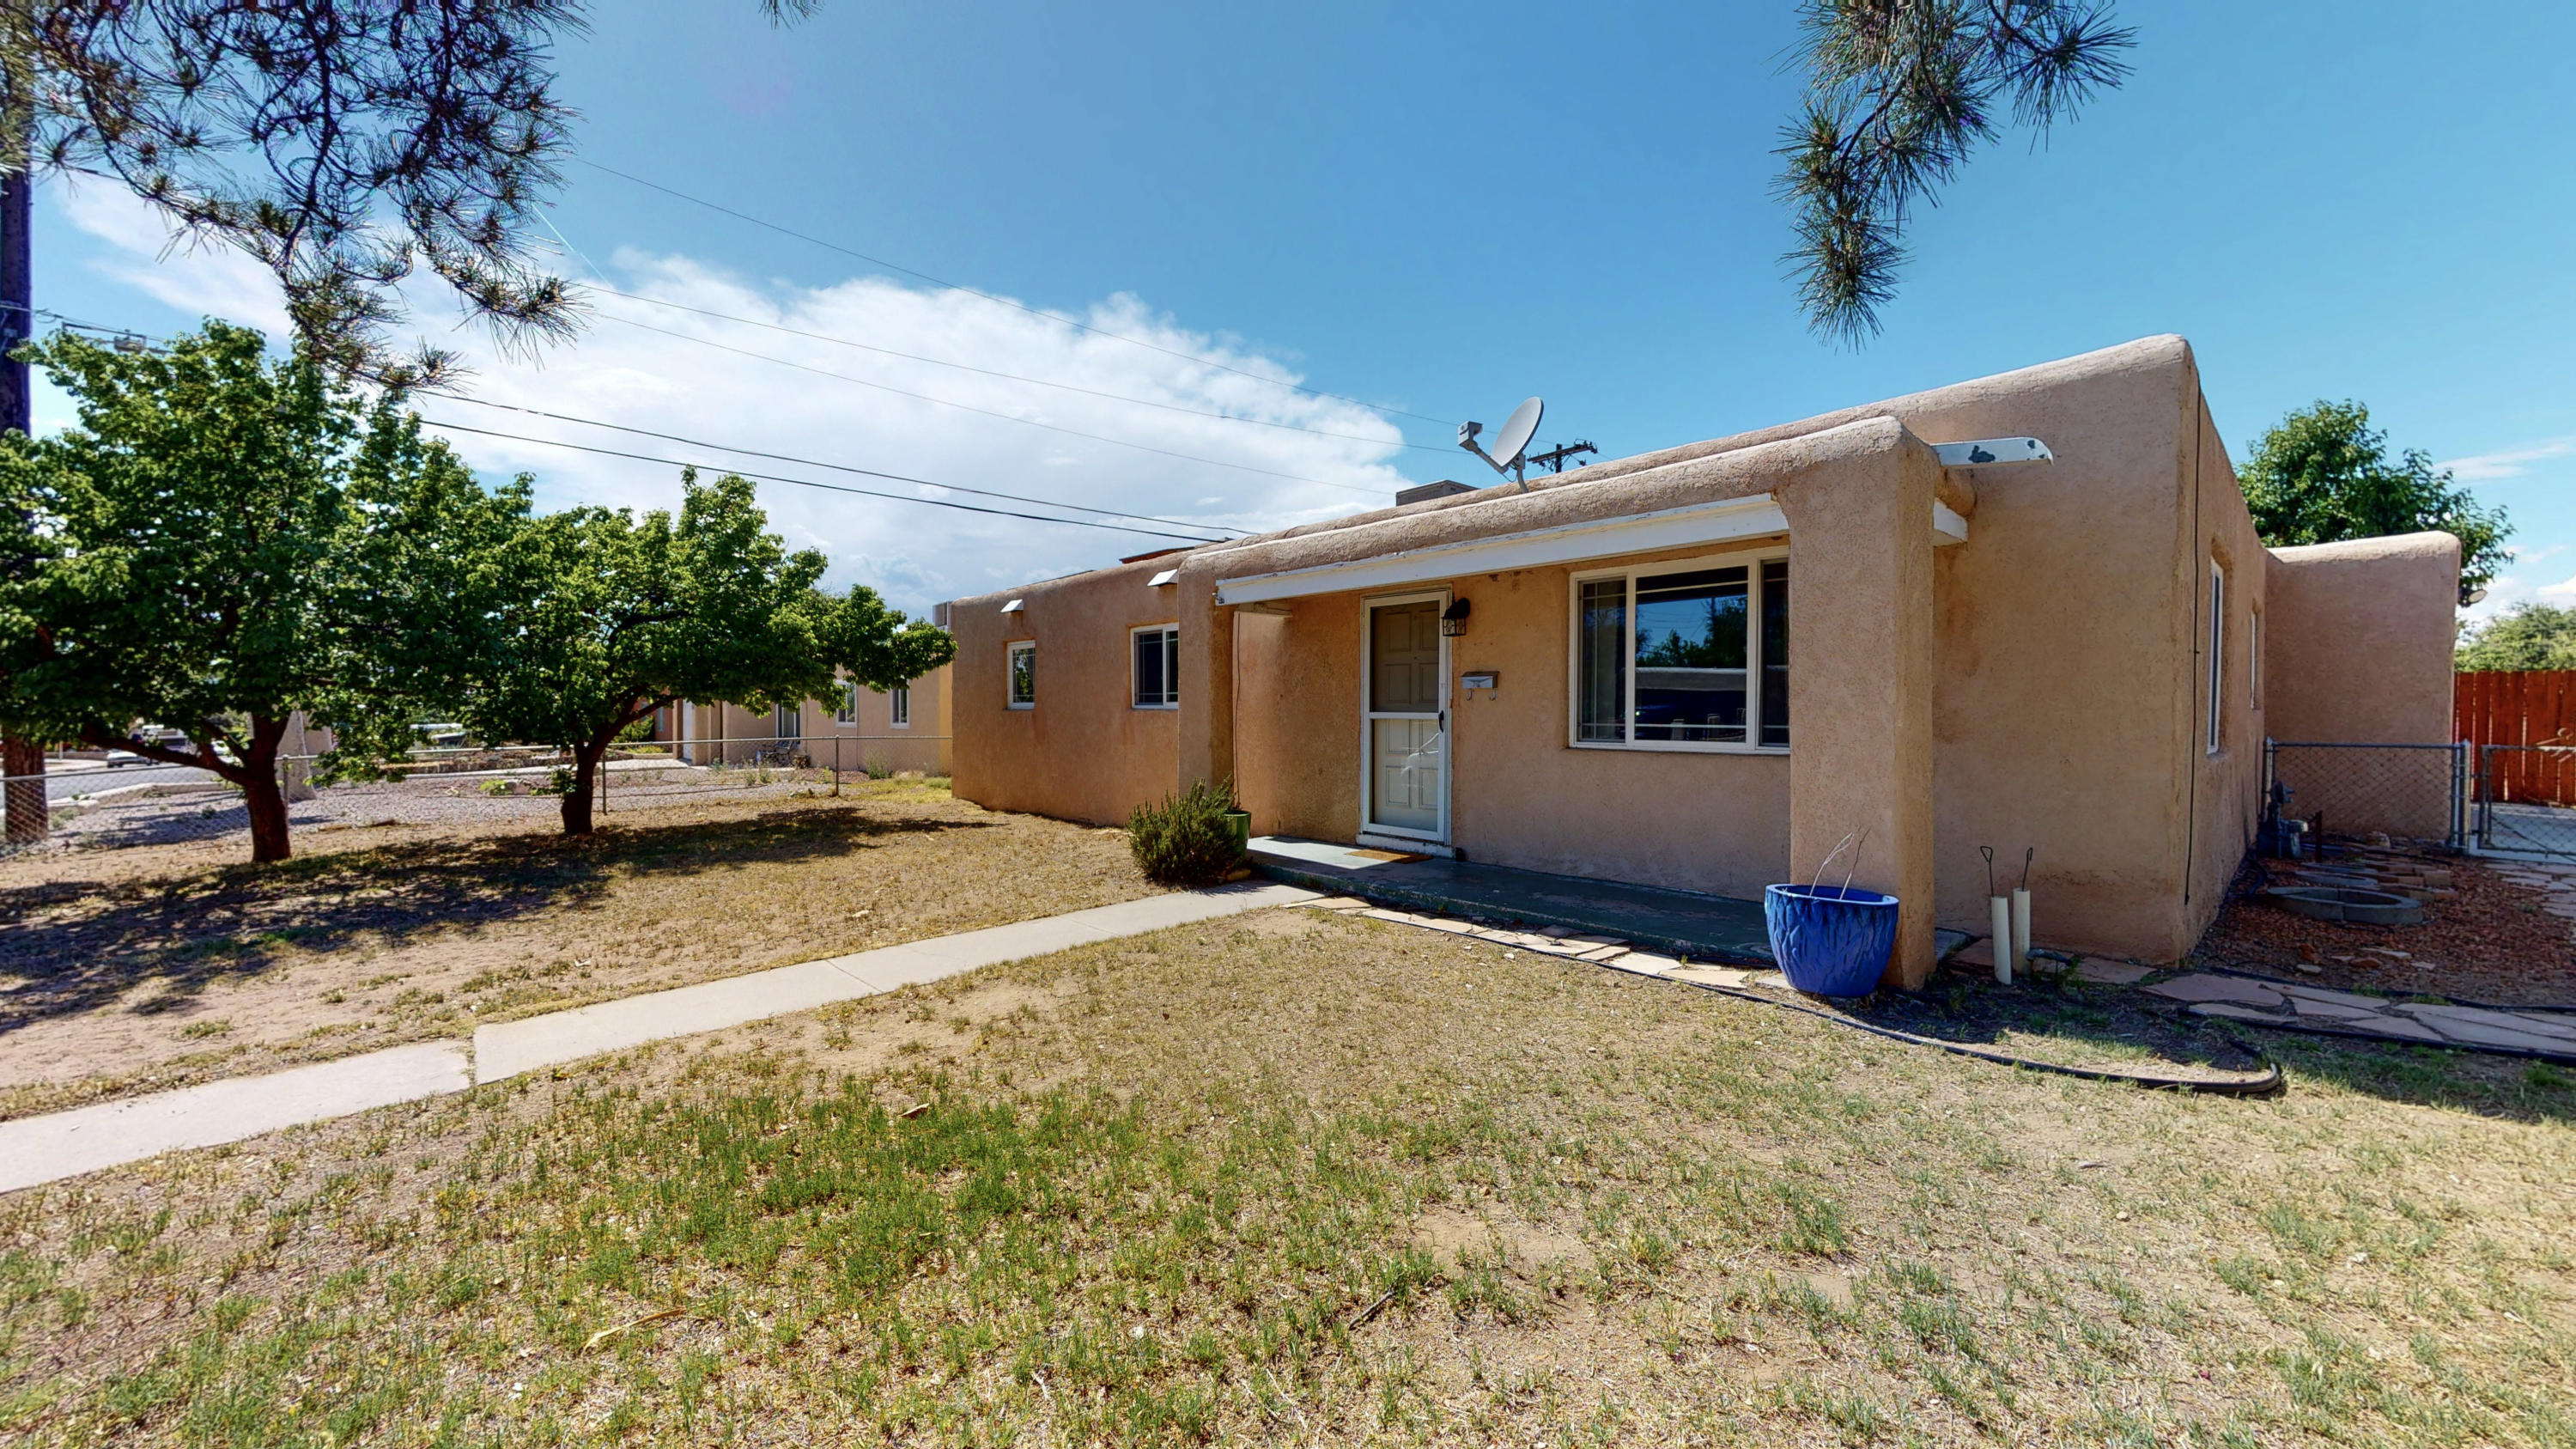 Beautiful three bedroom two bath home located in a very desirable North East Heights Location.  This clean and bright home has updated appliances and kitchen cabinets, newer windows and updated bathrooms.  The large private back yard is great for entertaining and cook outs.  This fabulous home is located close to schools, parks, shopping and just minutes to easy freeway access.  This comfy home is ready for it's new owners.  Come see it today.